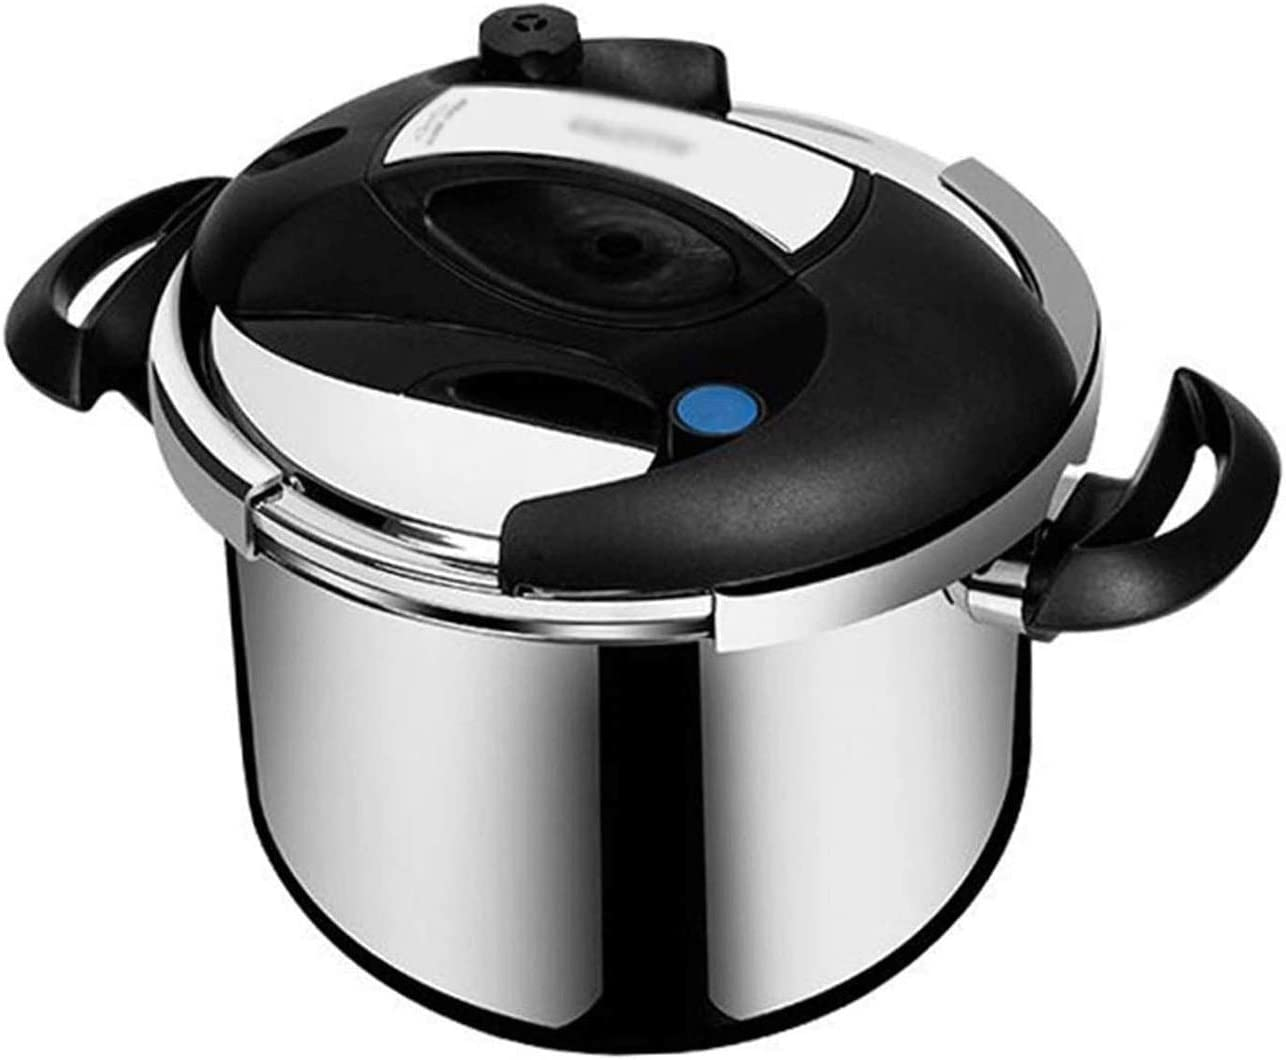 Z-COLOR Stainless Steel Pressure Cooker, Explosion-proof Pressure Cooker with Self-locking Safety Valve, Visible Lid, Household Gas Stove and Induction Cooker (Size : 6L)